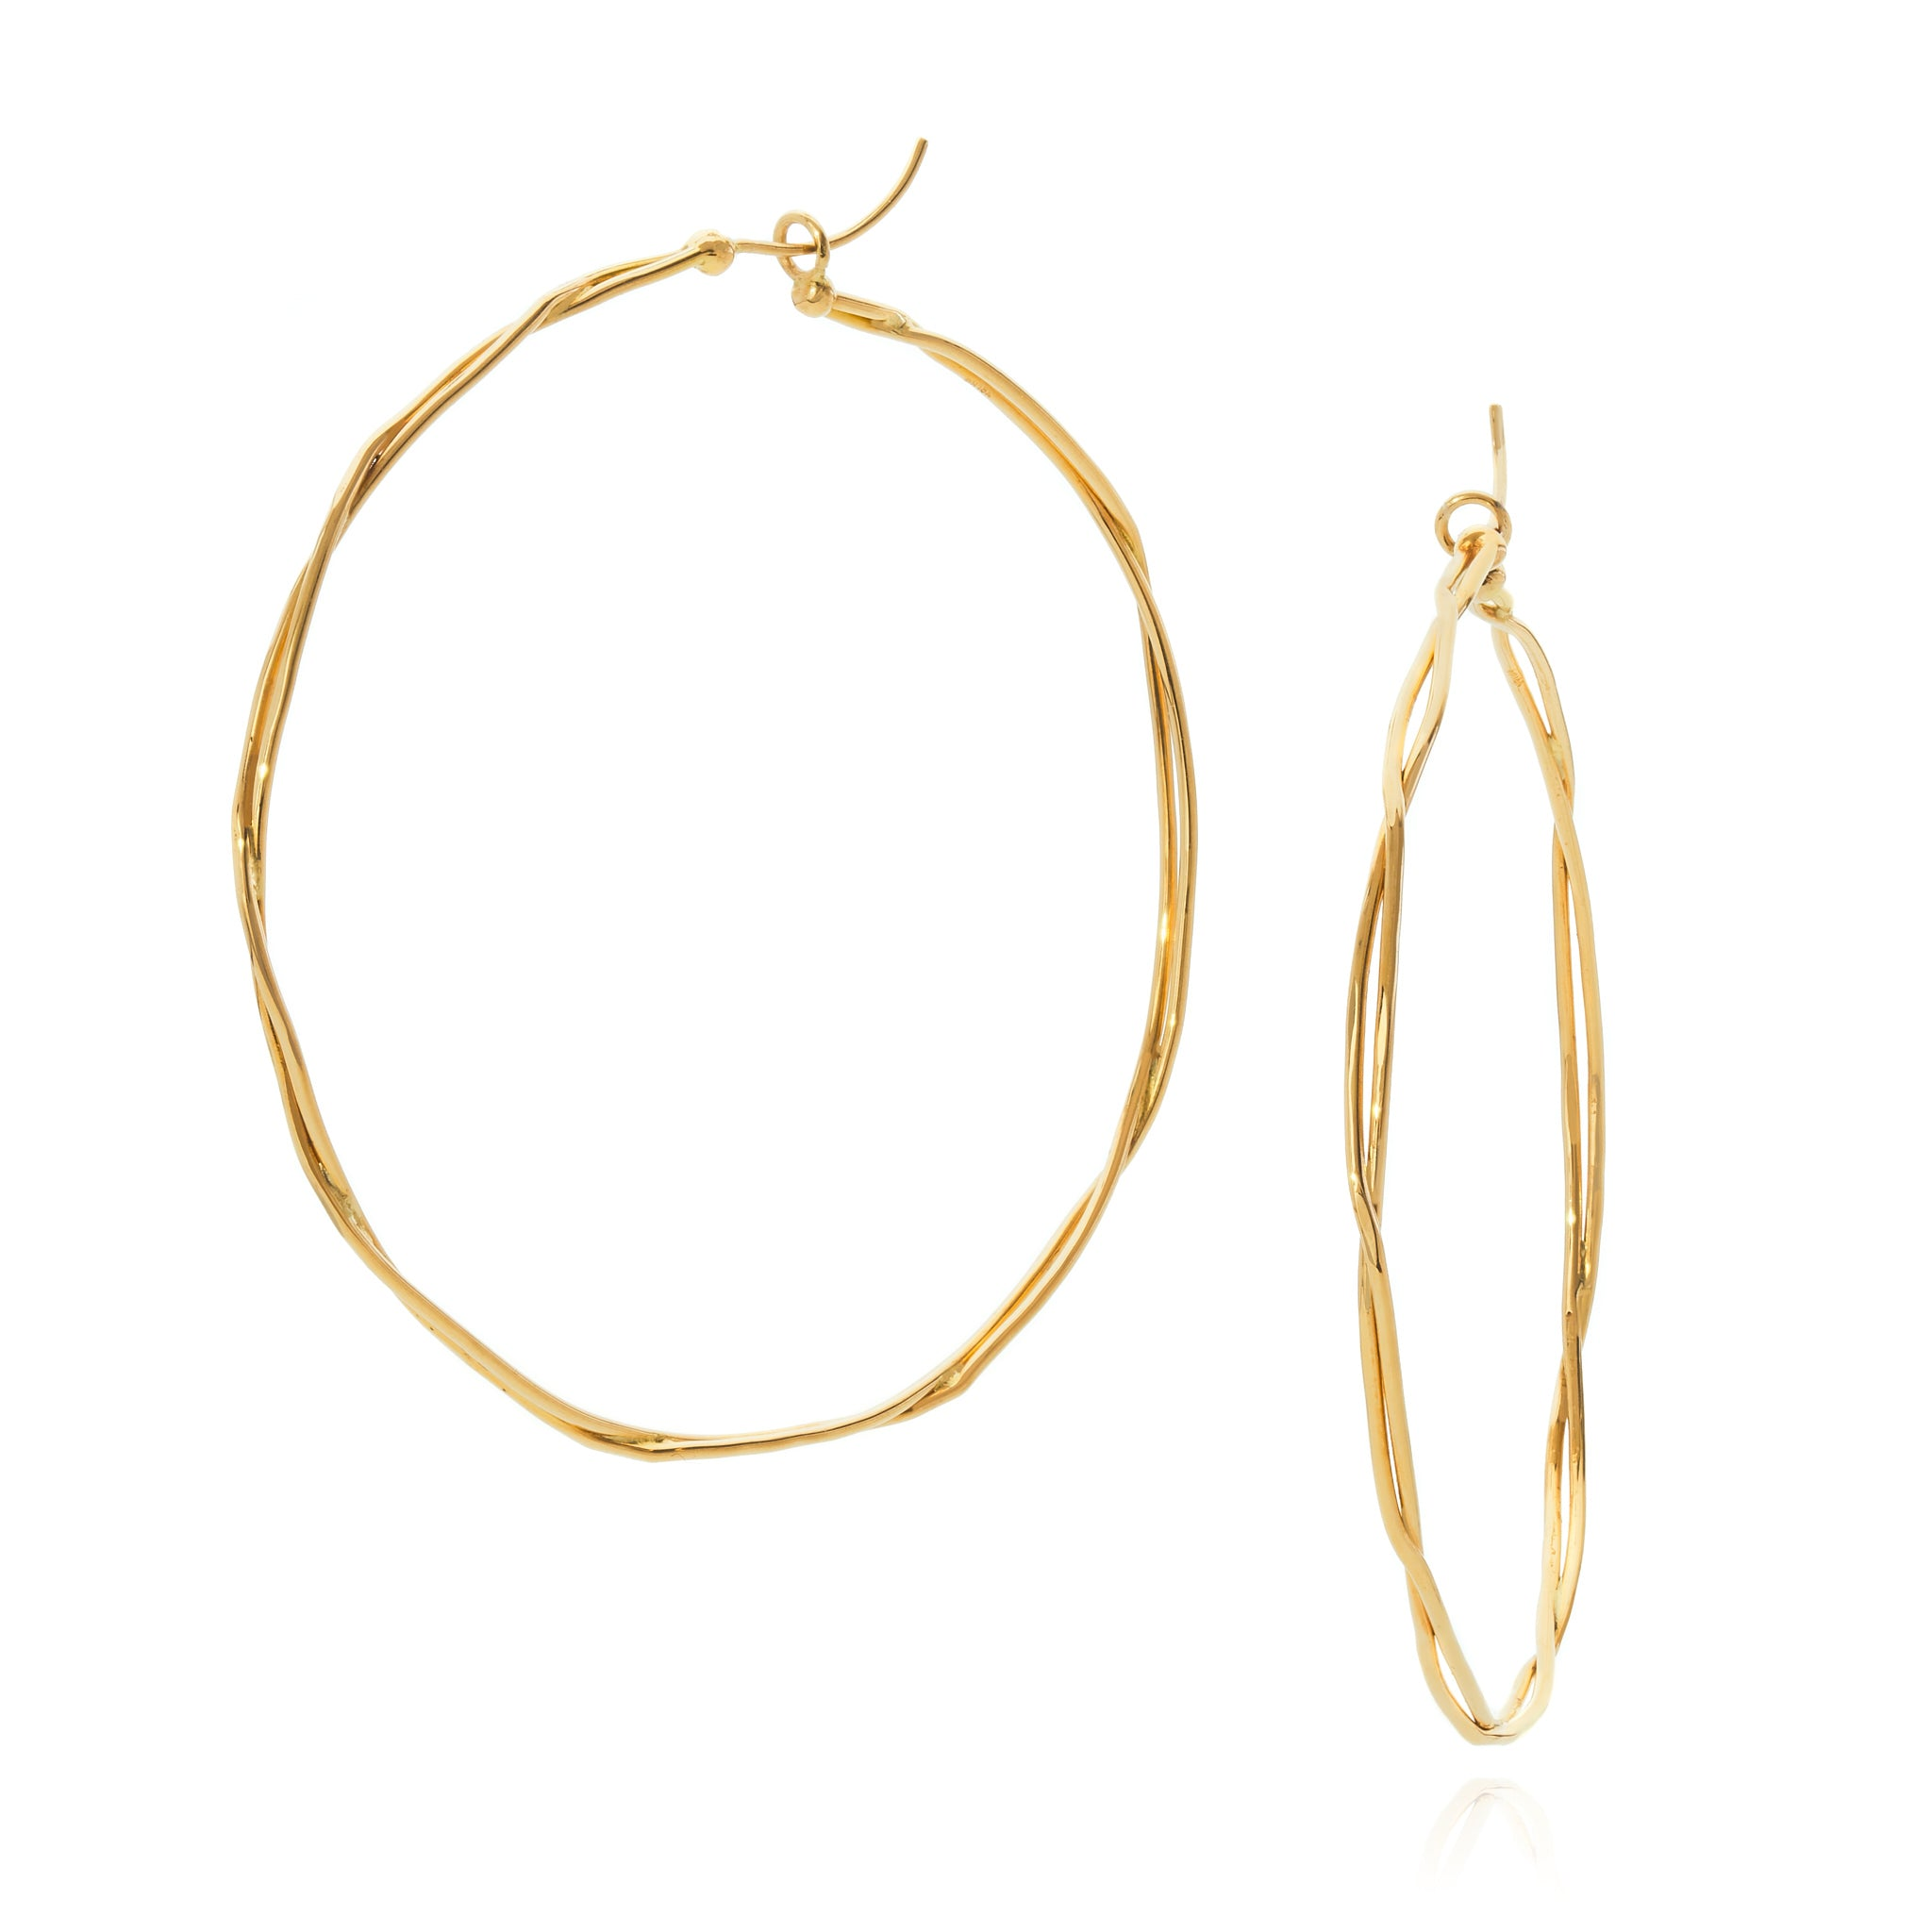 18k yellow gold large wrapped hoop earrings